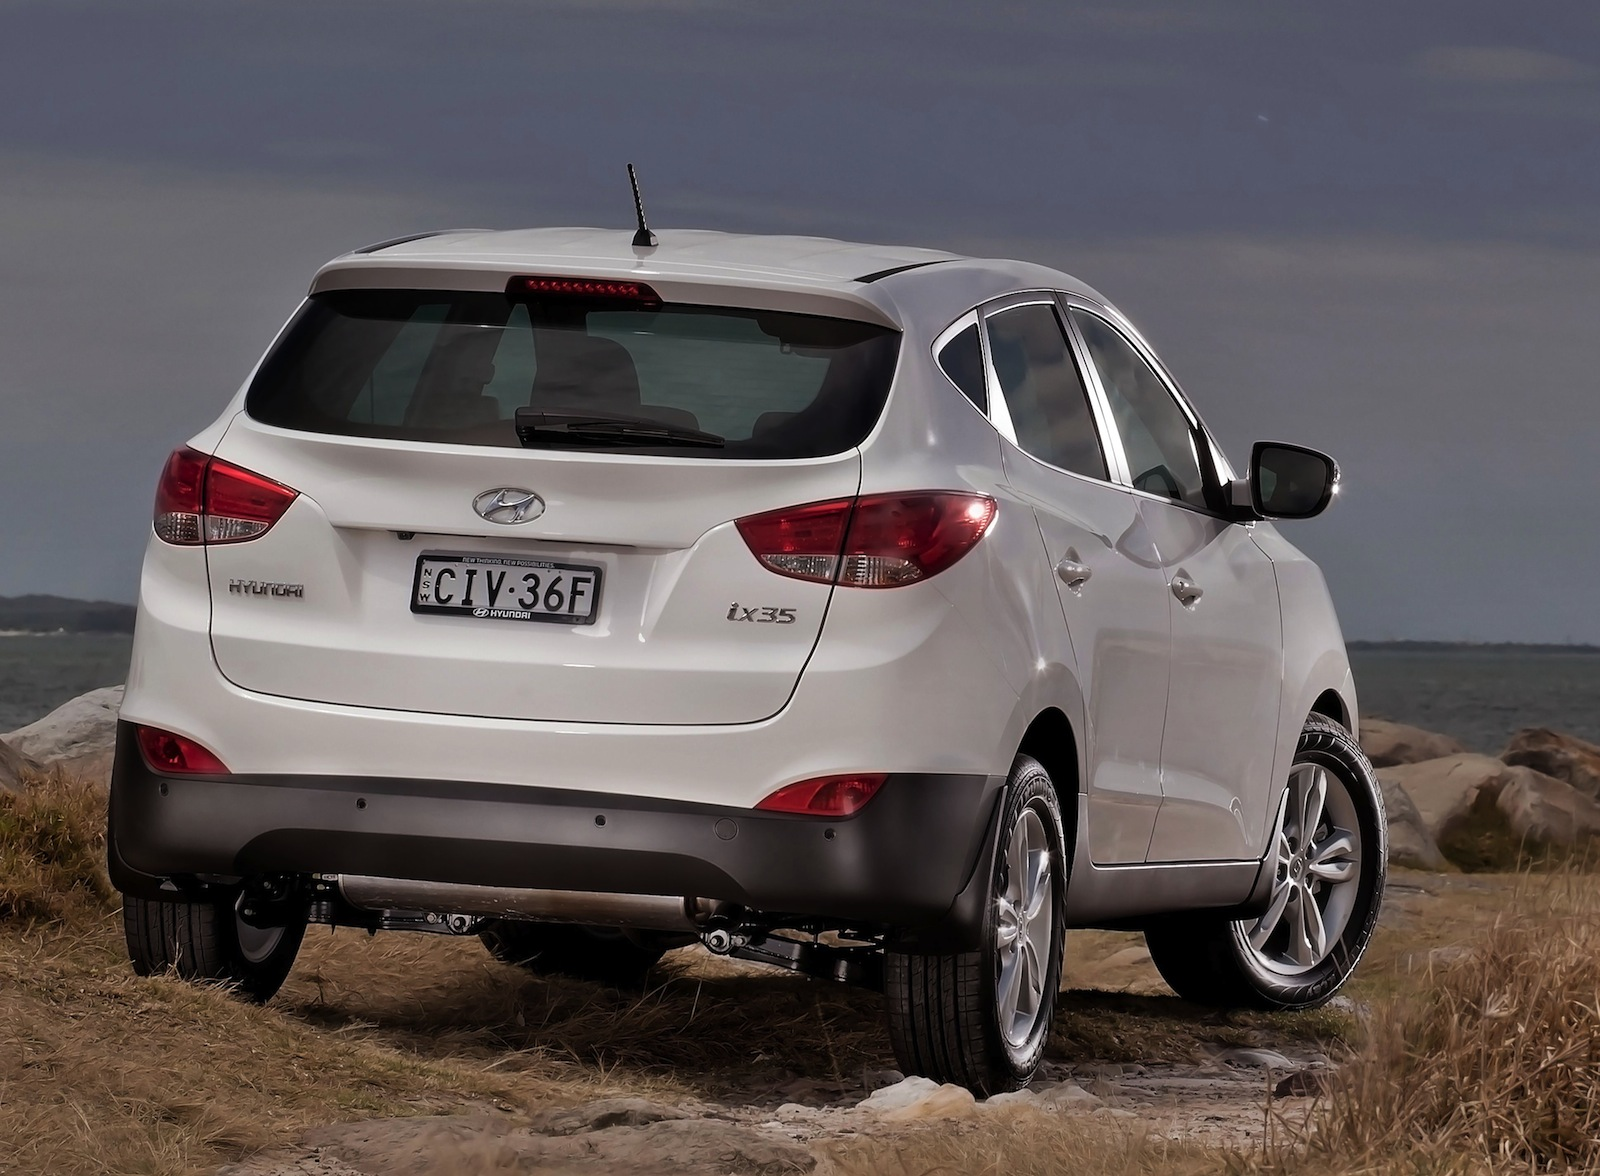 hyundai ix35 se adds awd 2 0 litre diesel variant photos 1 of 3. Black Bedroom Furniture Sets. Home Design Ideas